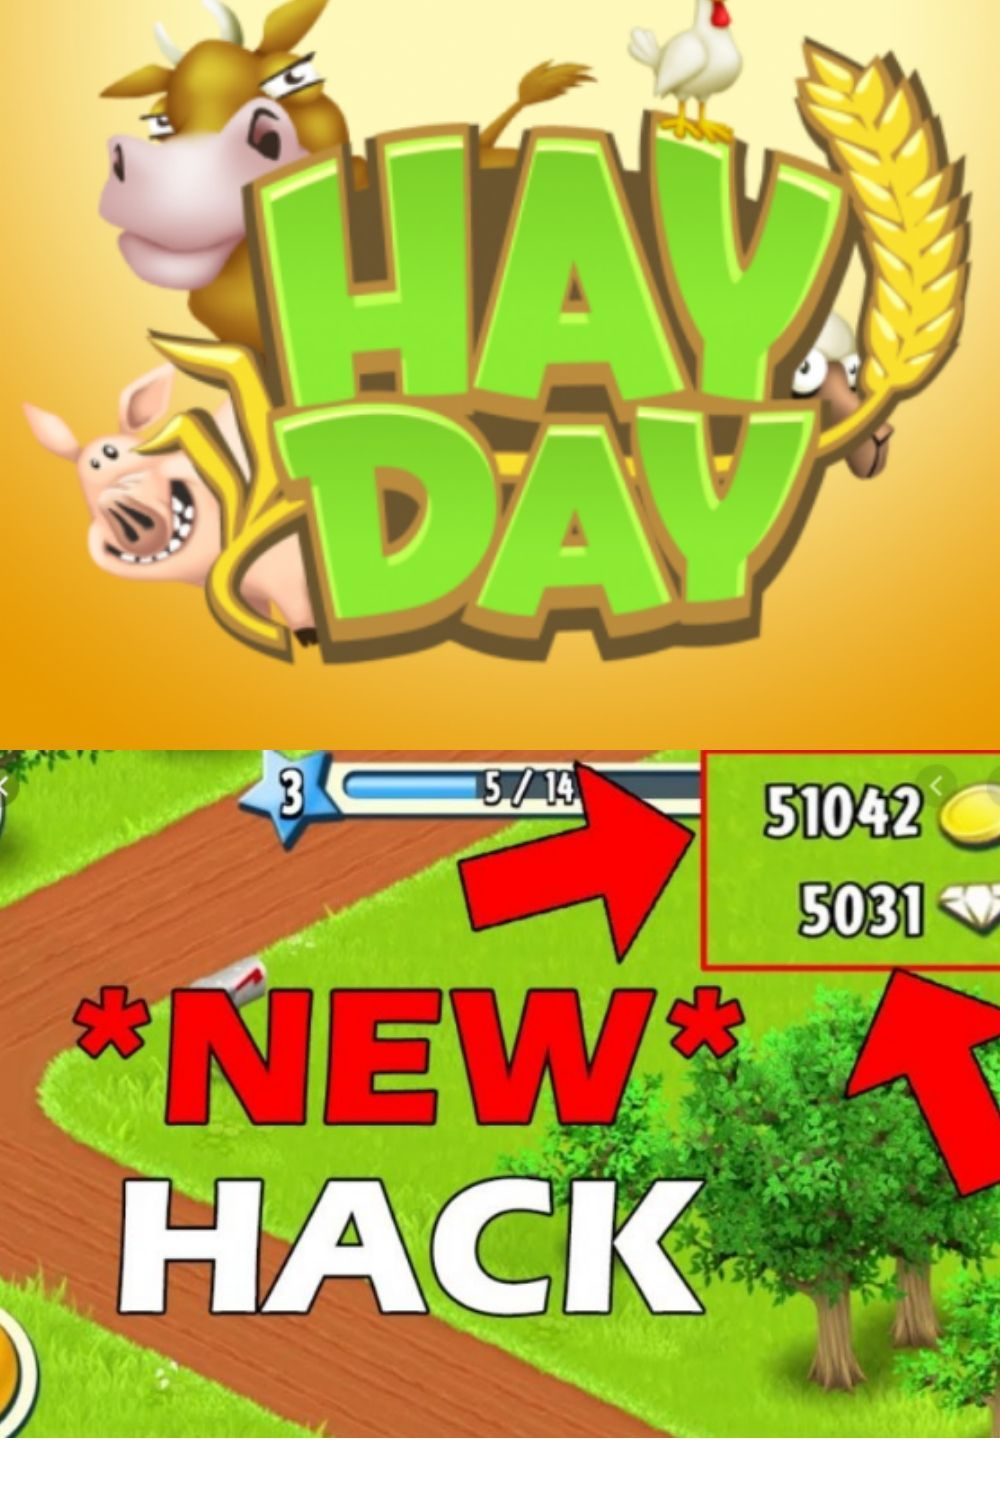 hay day hack apk in 2020 Hay day cheats, Hay day, Day